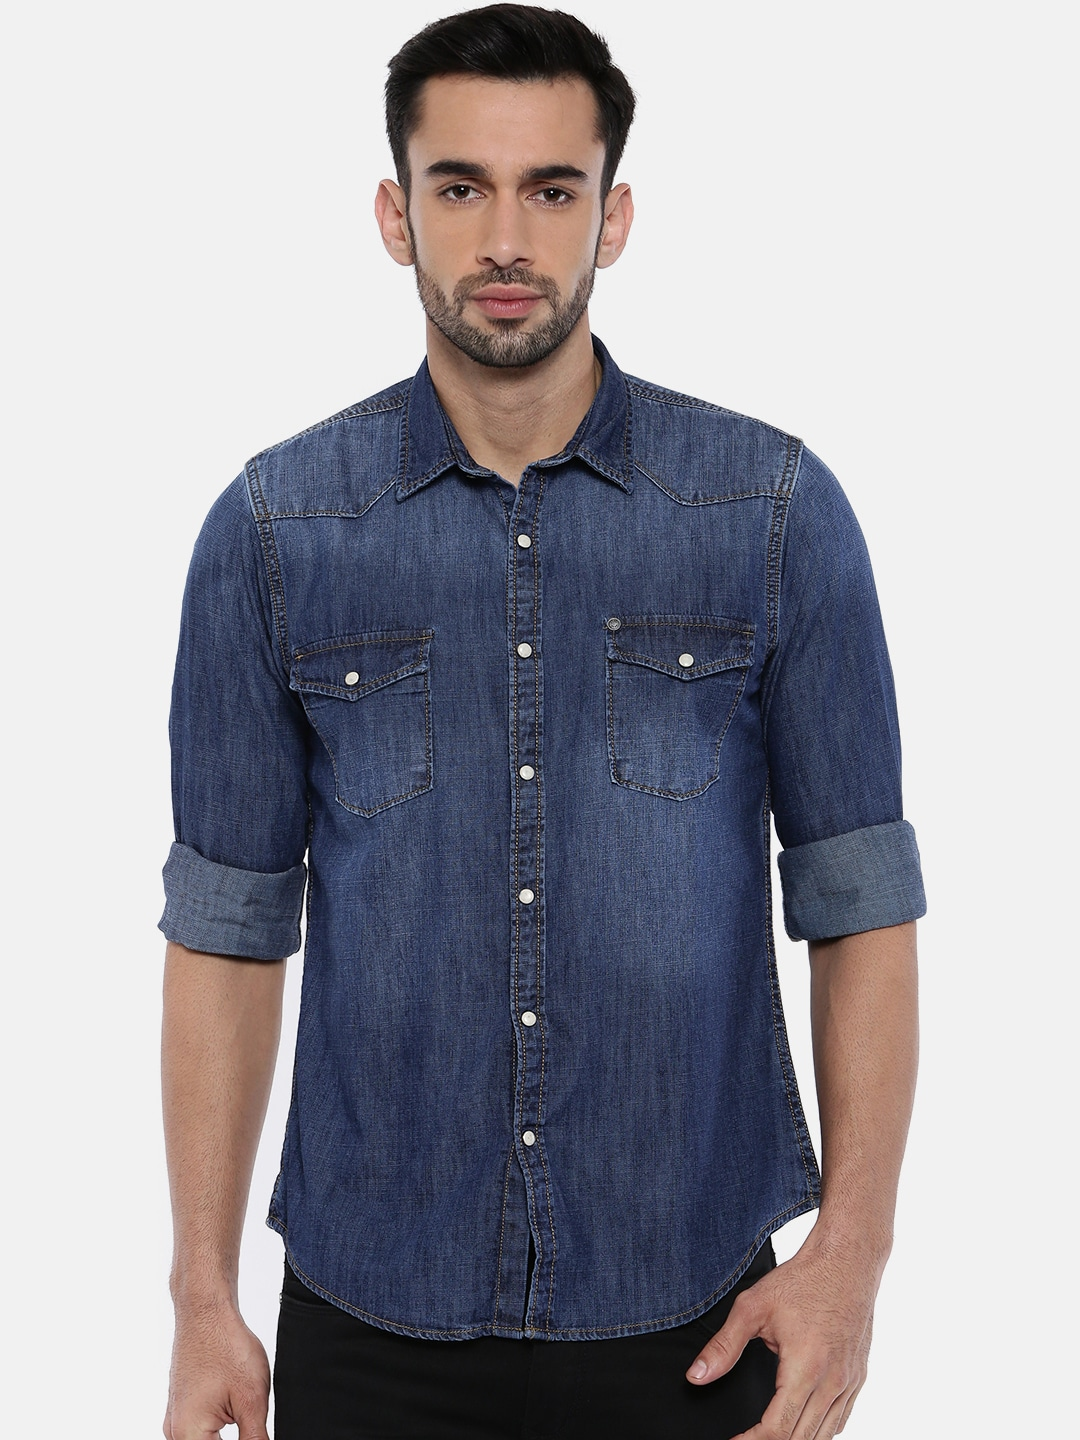 bfee8a161c5 Buy Pepe Jeans Men Blue Slim Fit Solid Casual Shirt - Shirts for Men ...